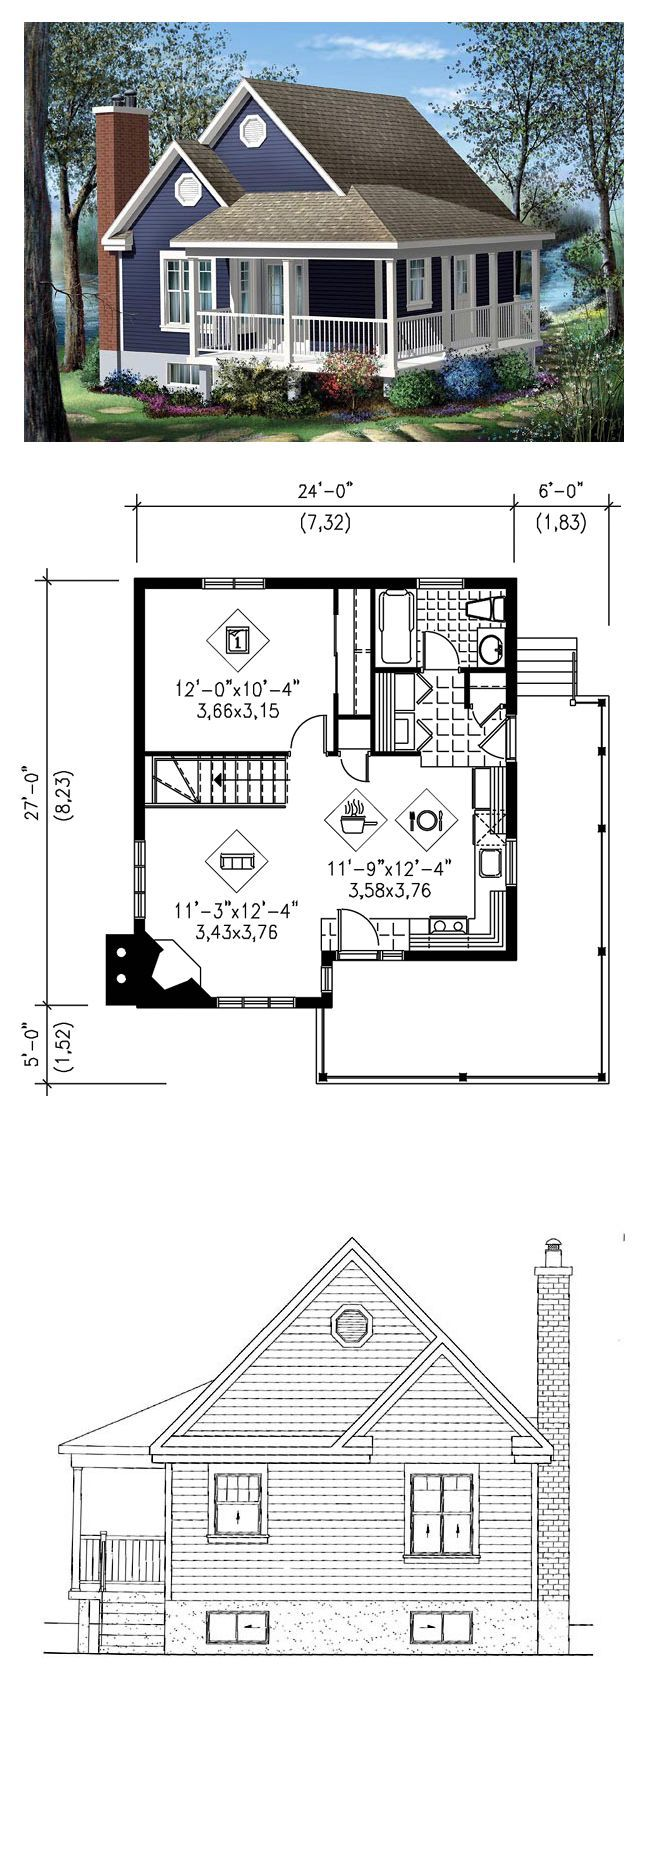 Country Living House Plans  Narrow Lot House Plan 49824  Total Living  Area: 613